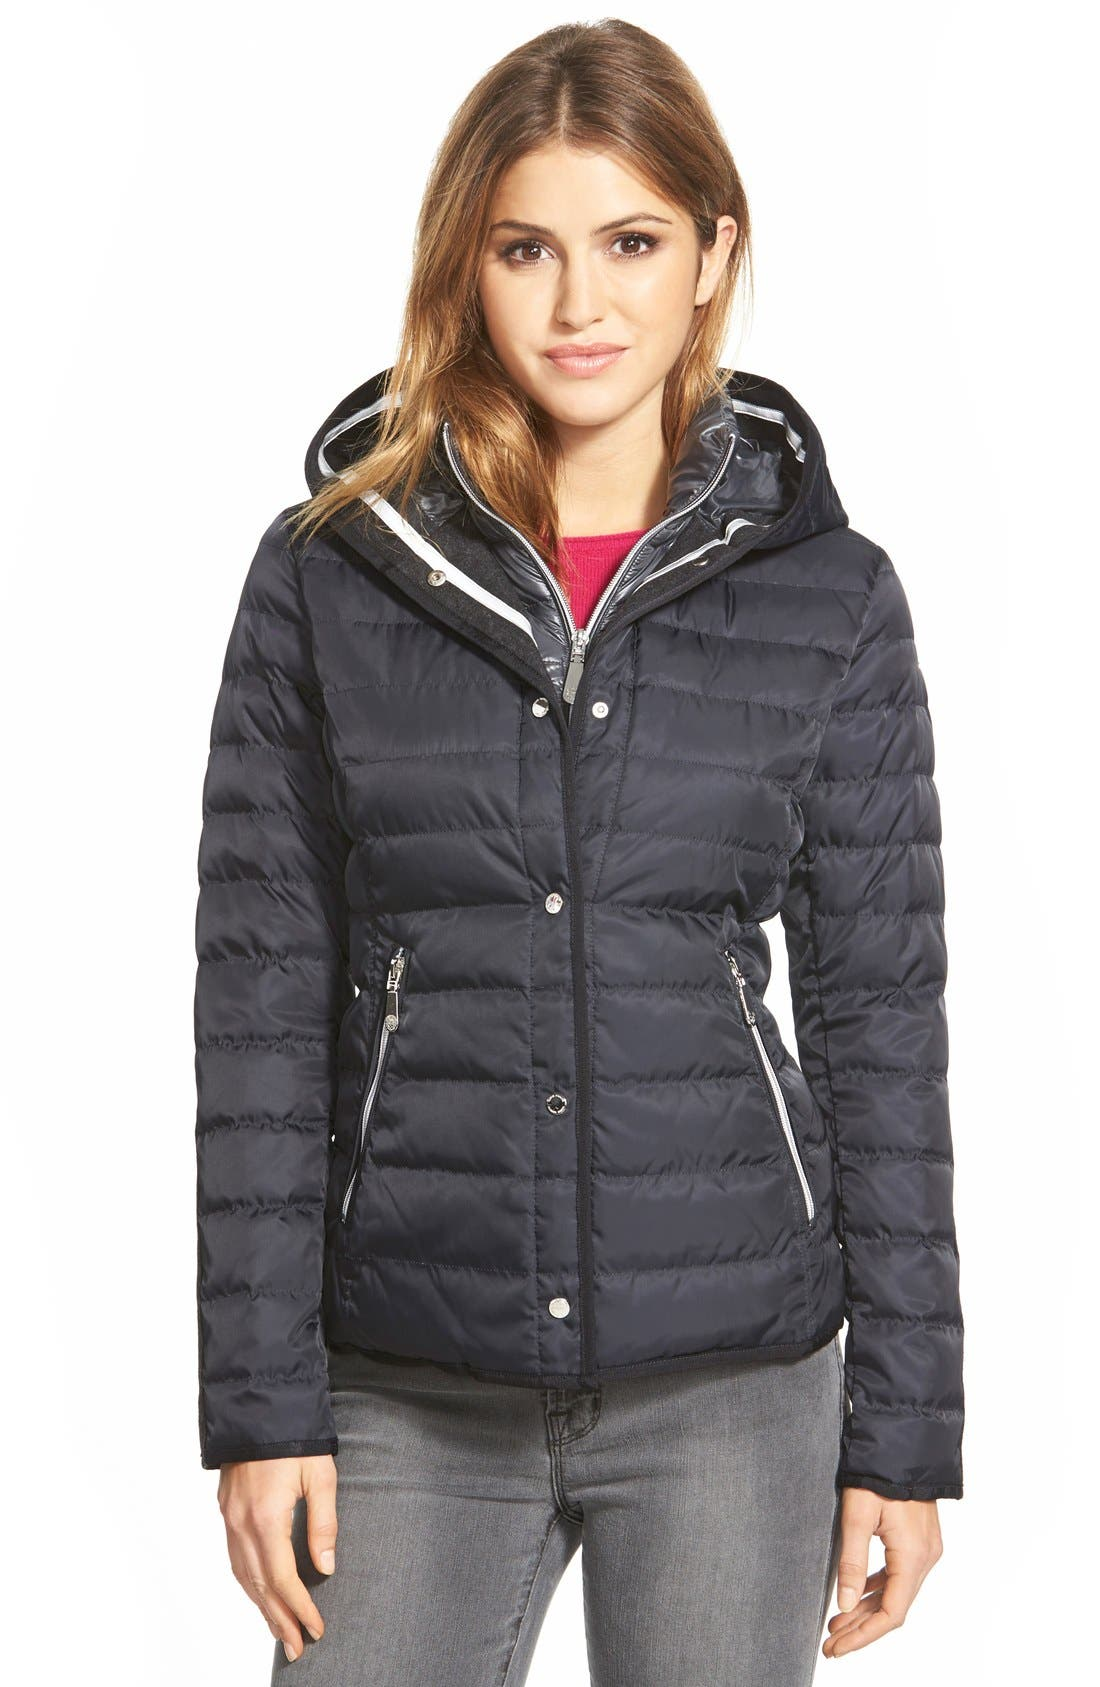 Main Image - Vince CamutoHooded Down Jacket with Vest Front Insert